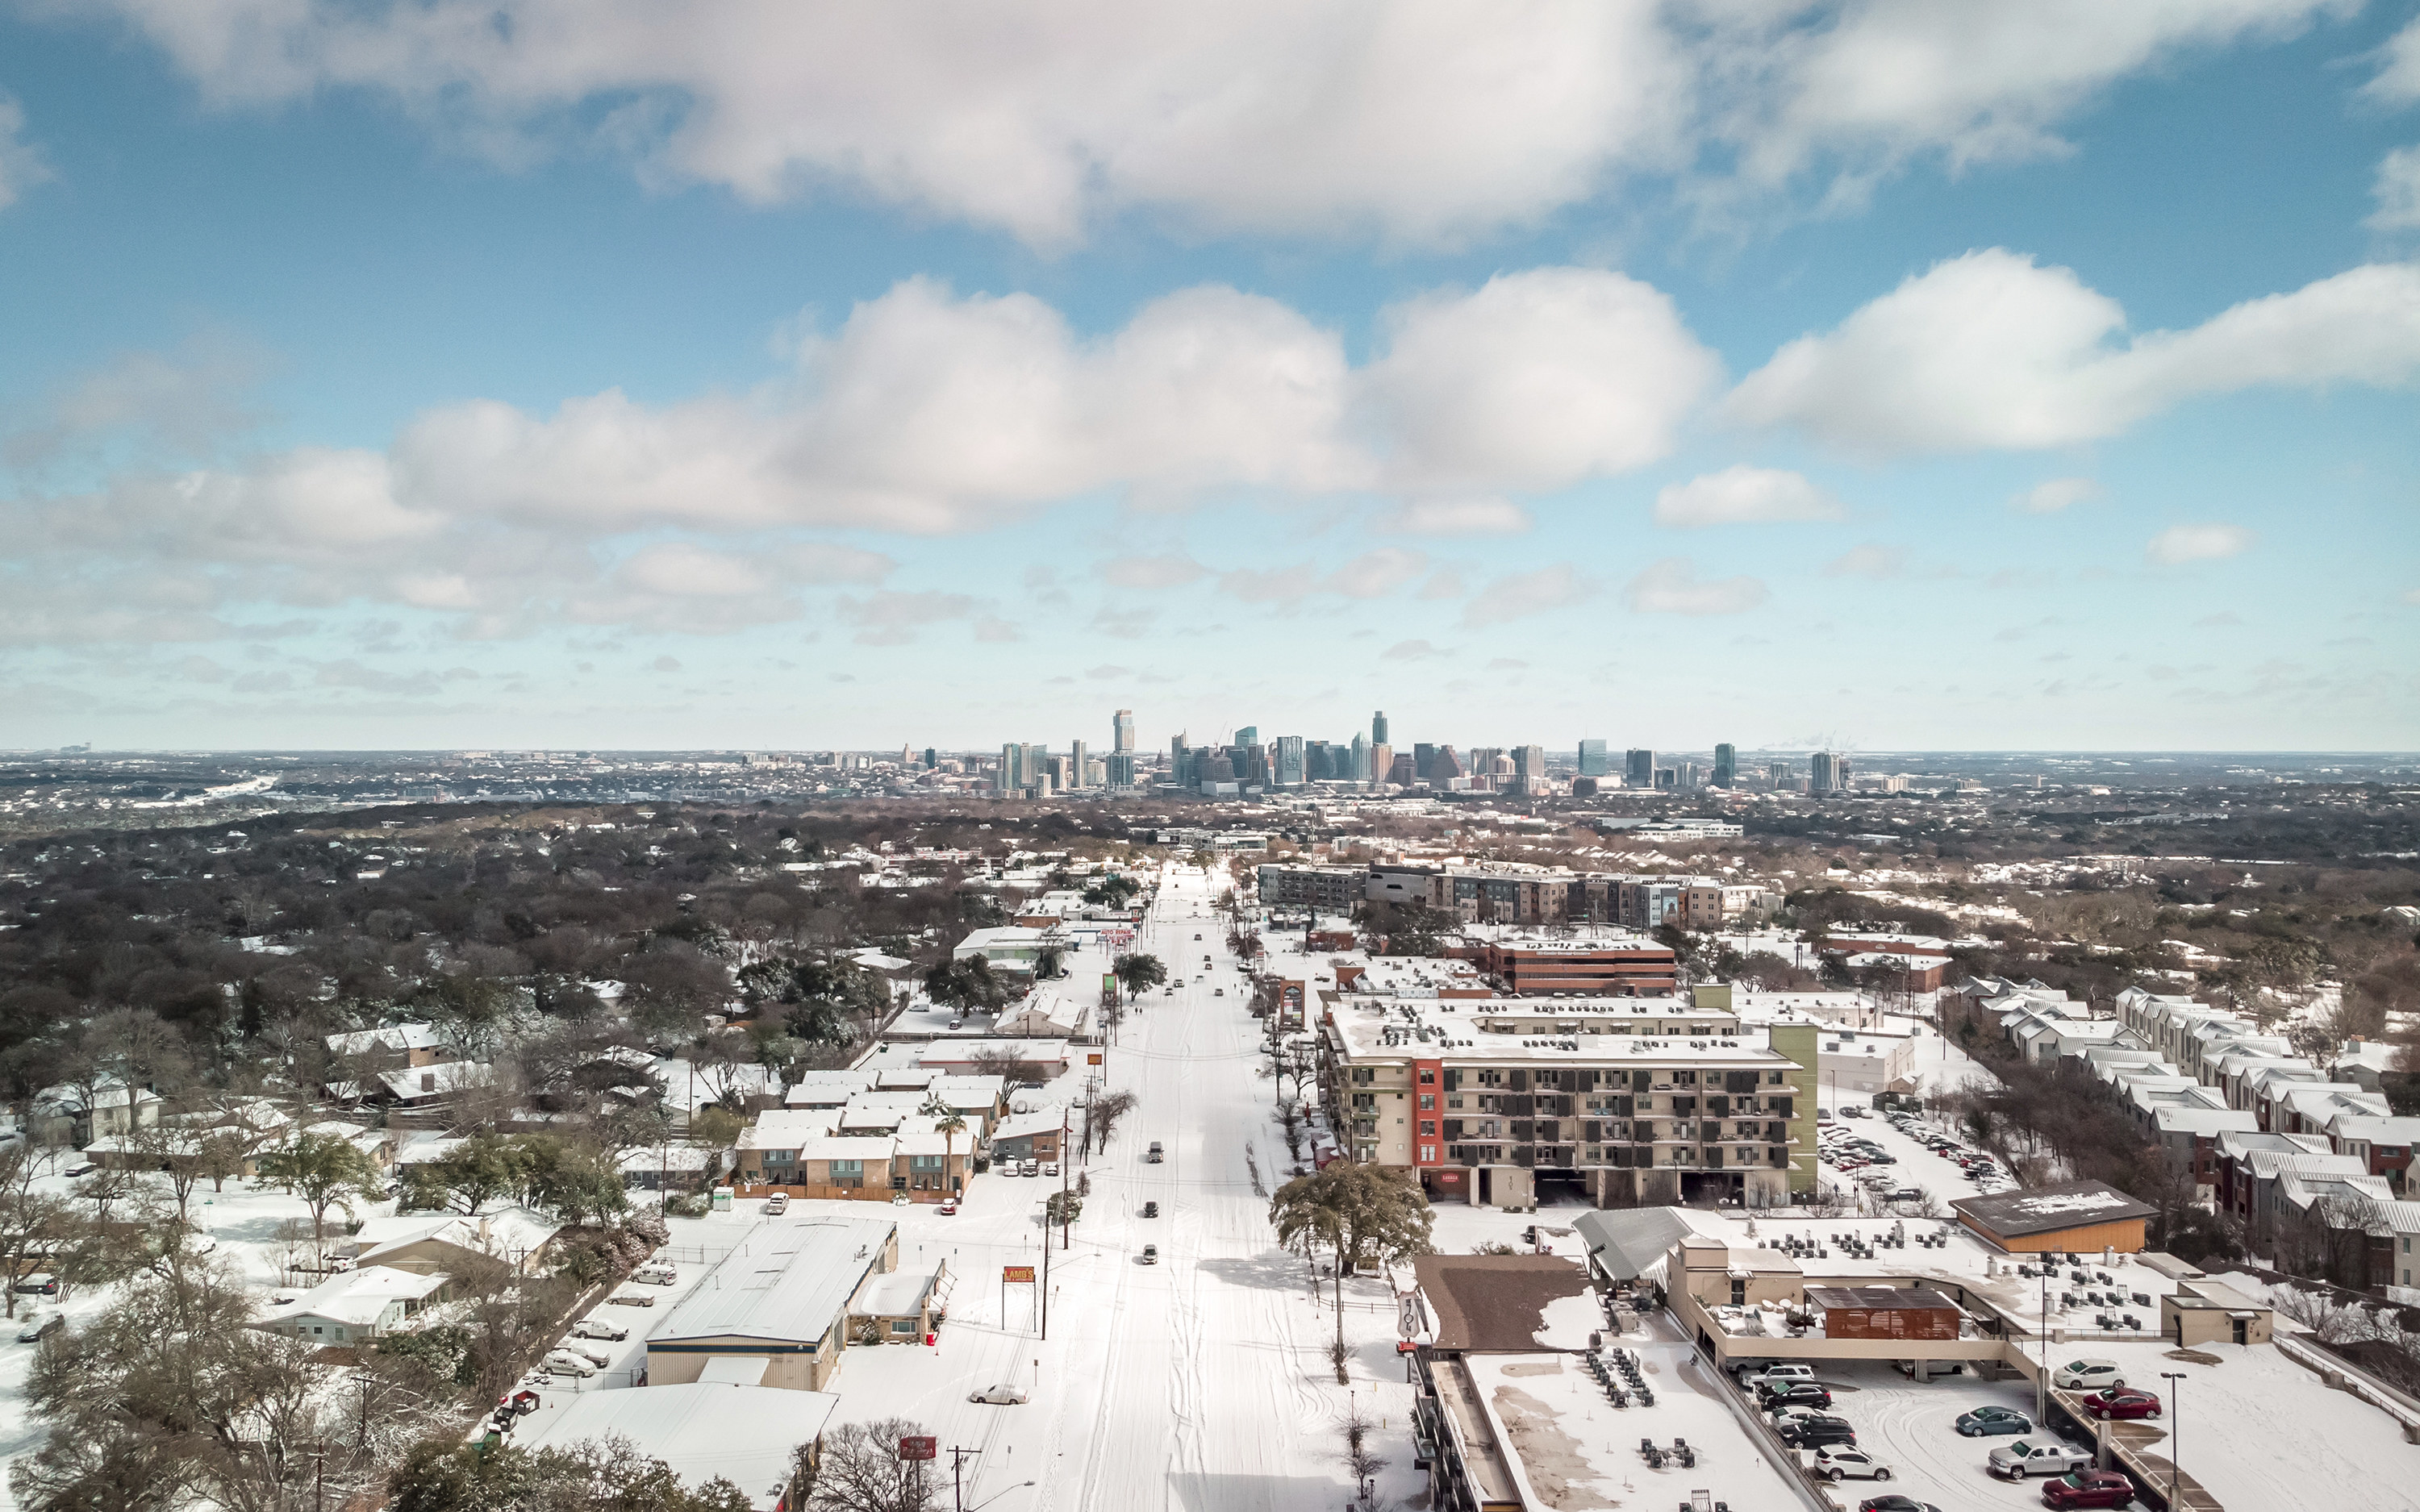 A snowy overhead scene in Austin showing snow-covered streets and a few cars